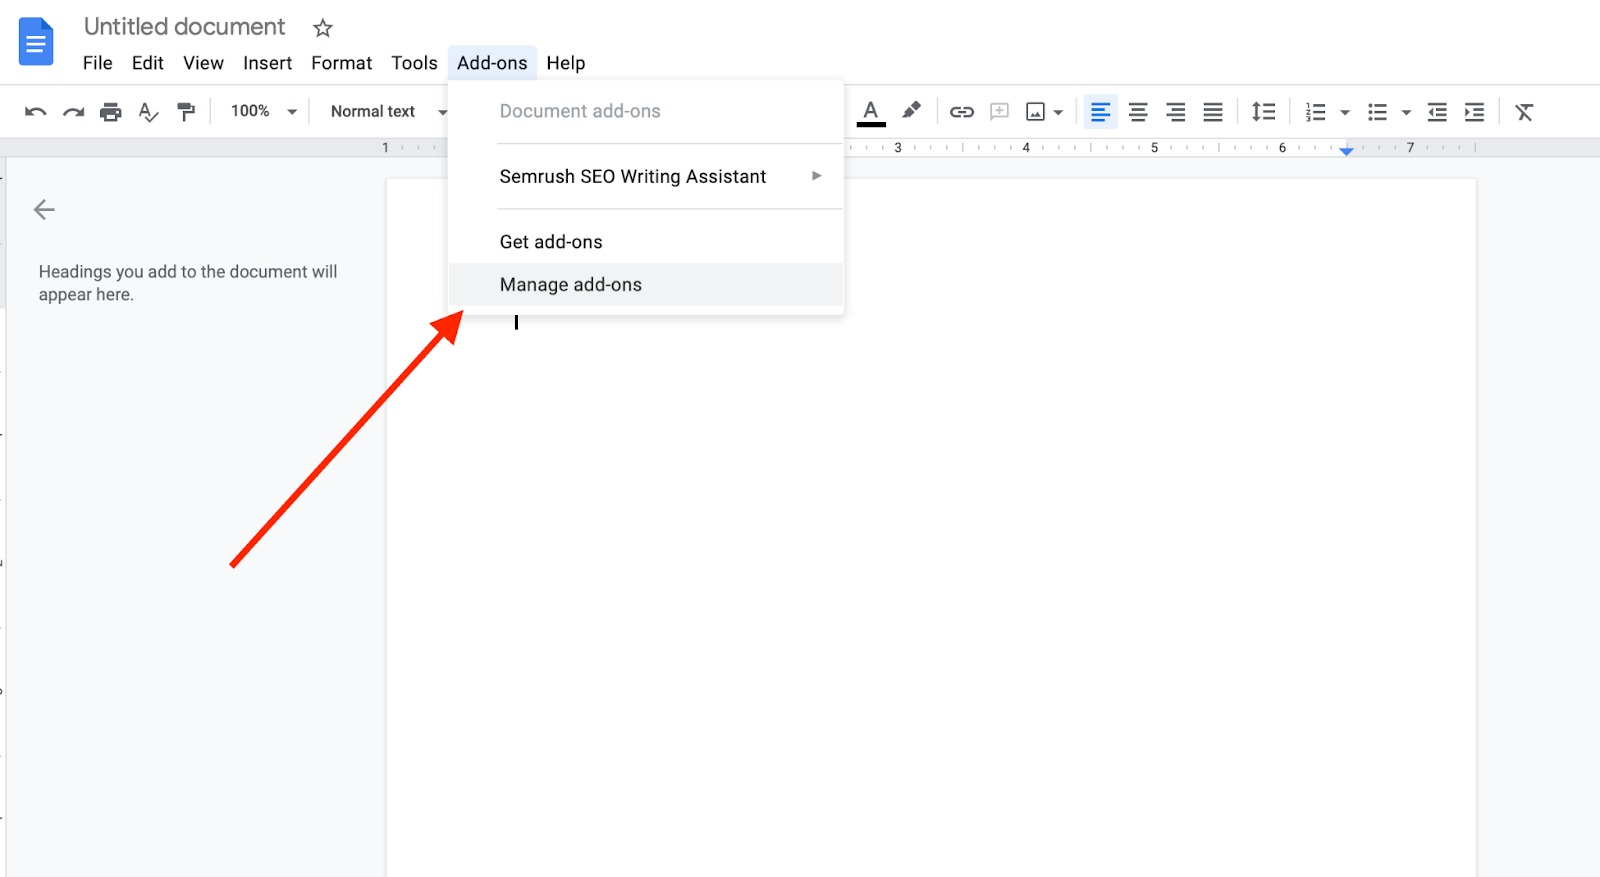 Troubleshooting SEO Writing Assistant image 1